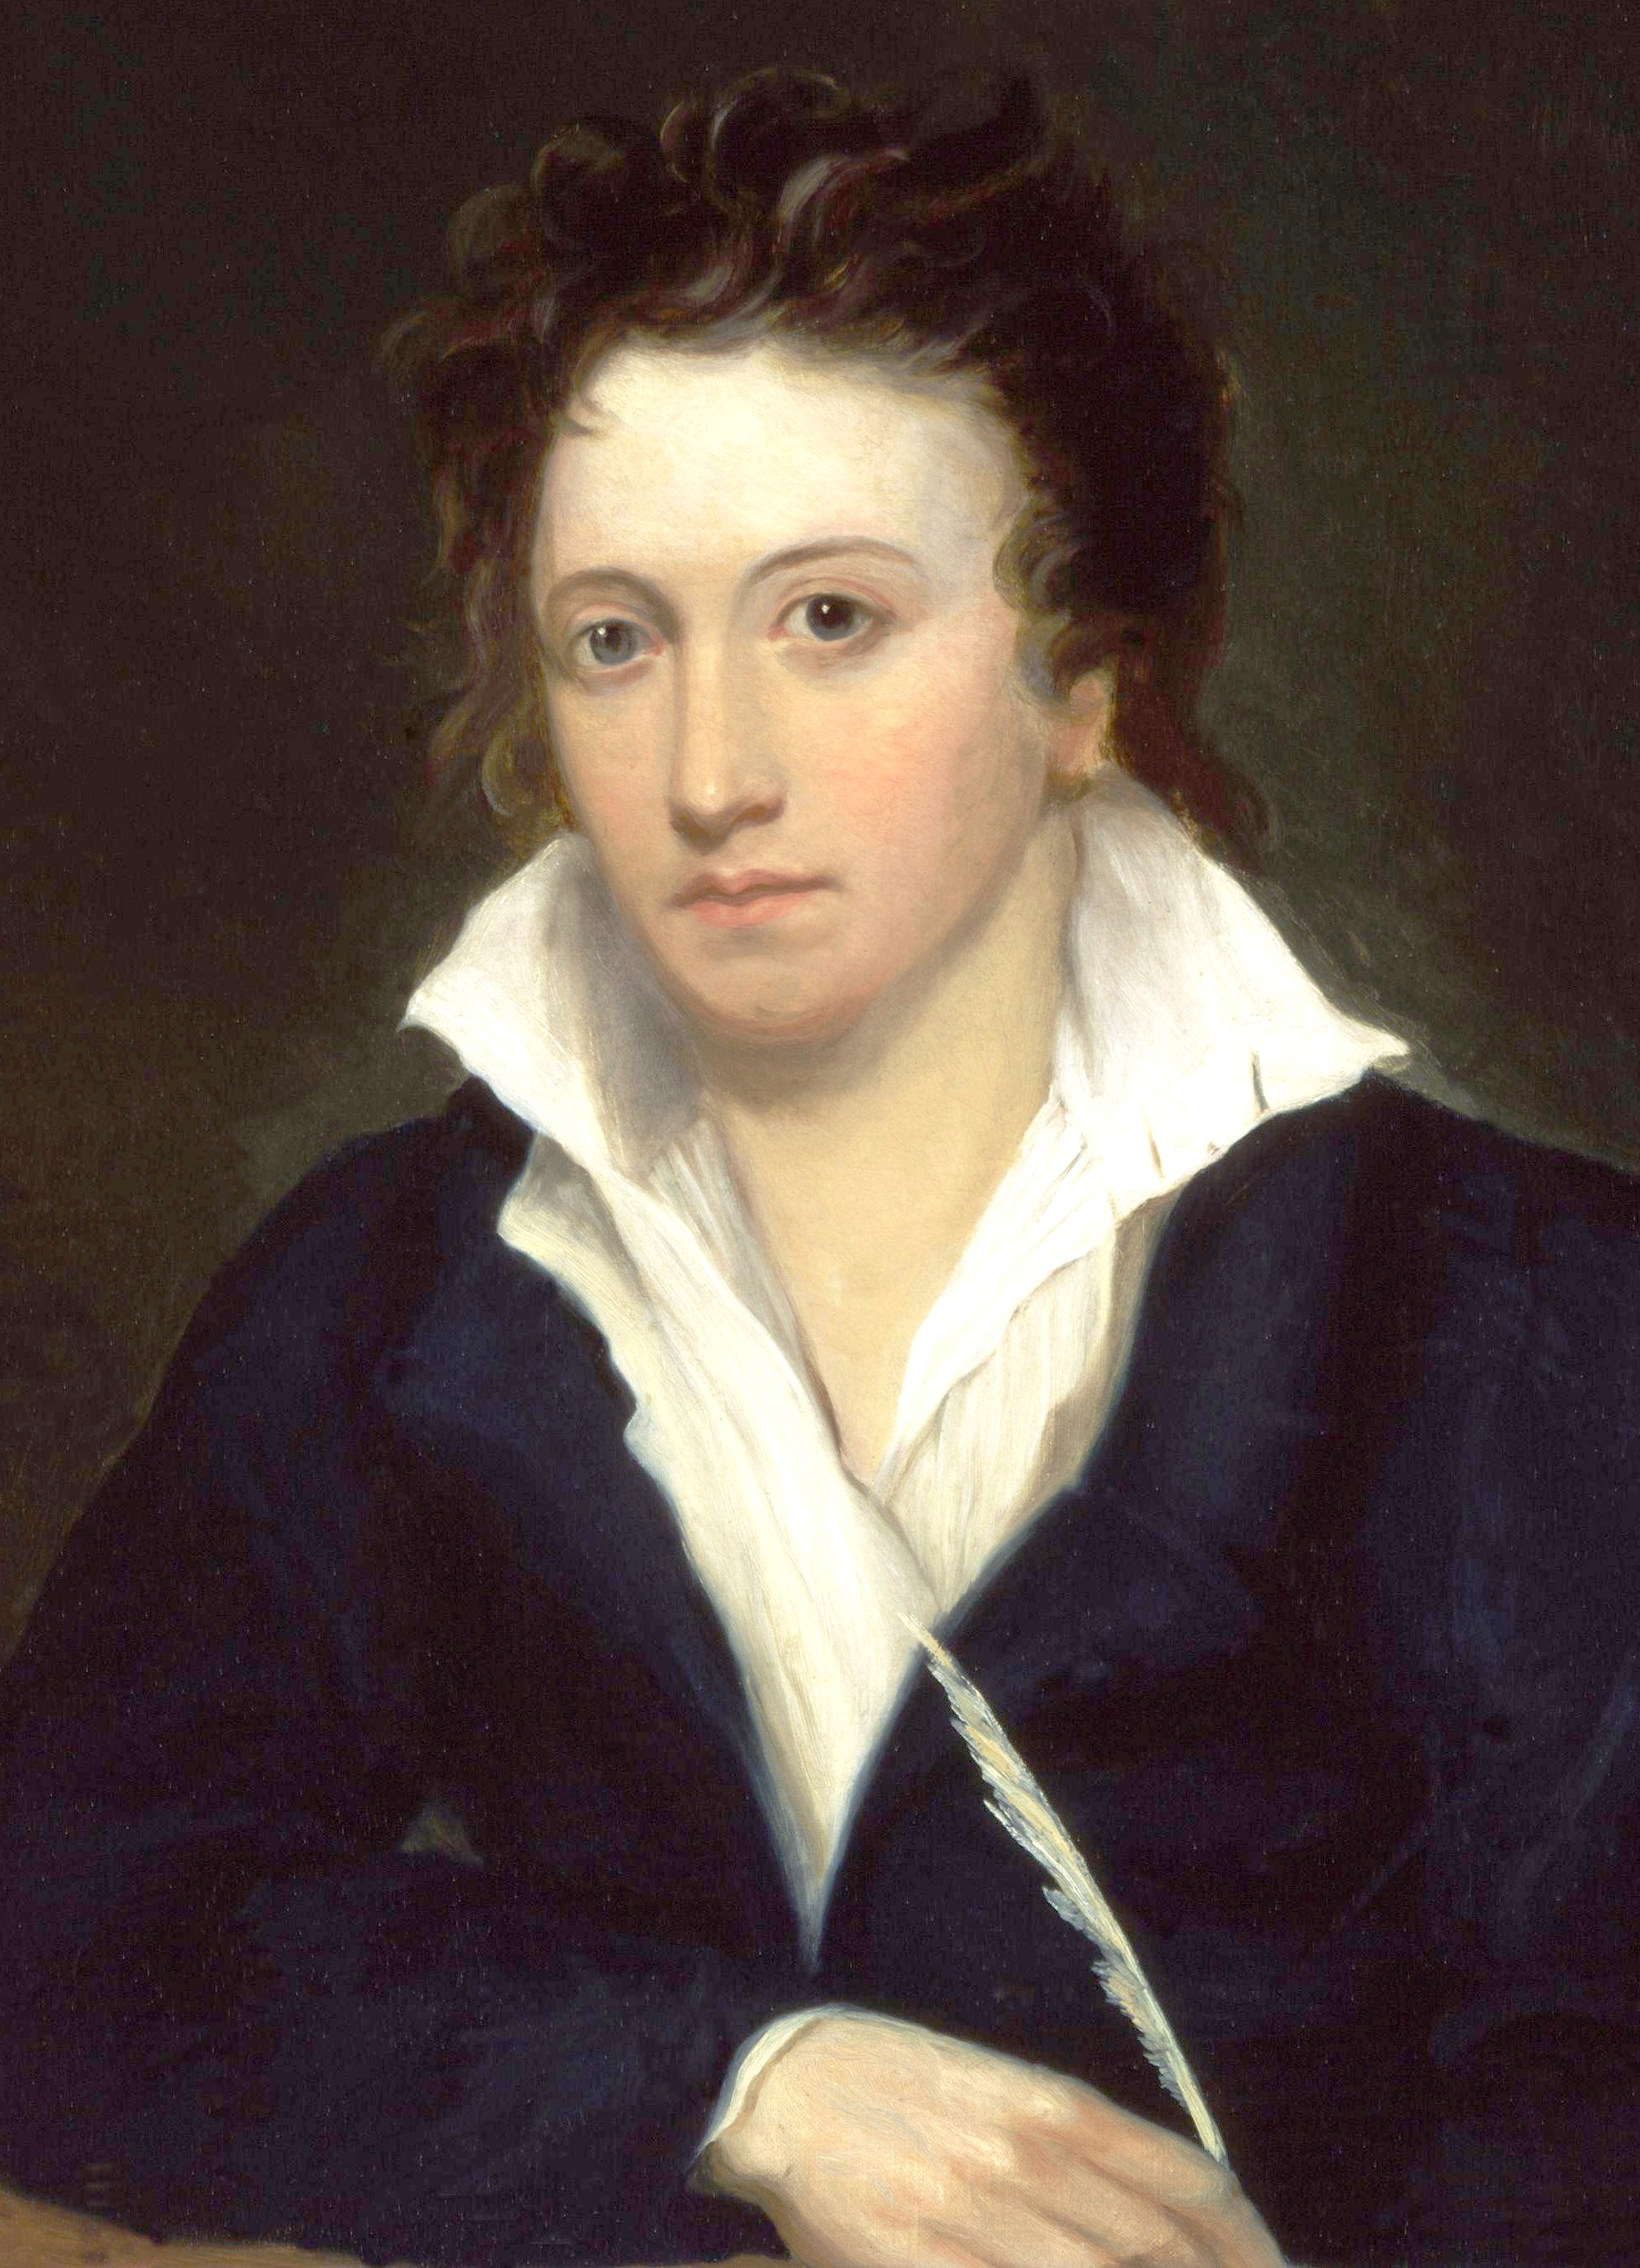 Depiction of Percy Bysshe Shelley